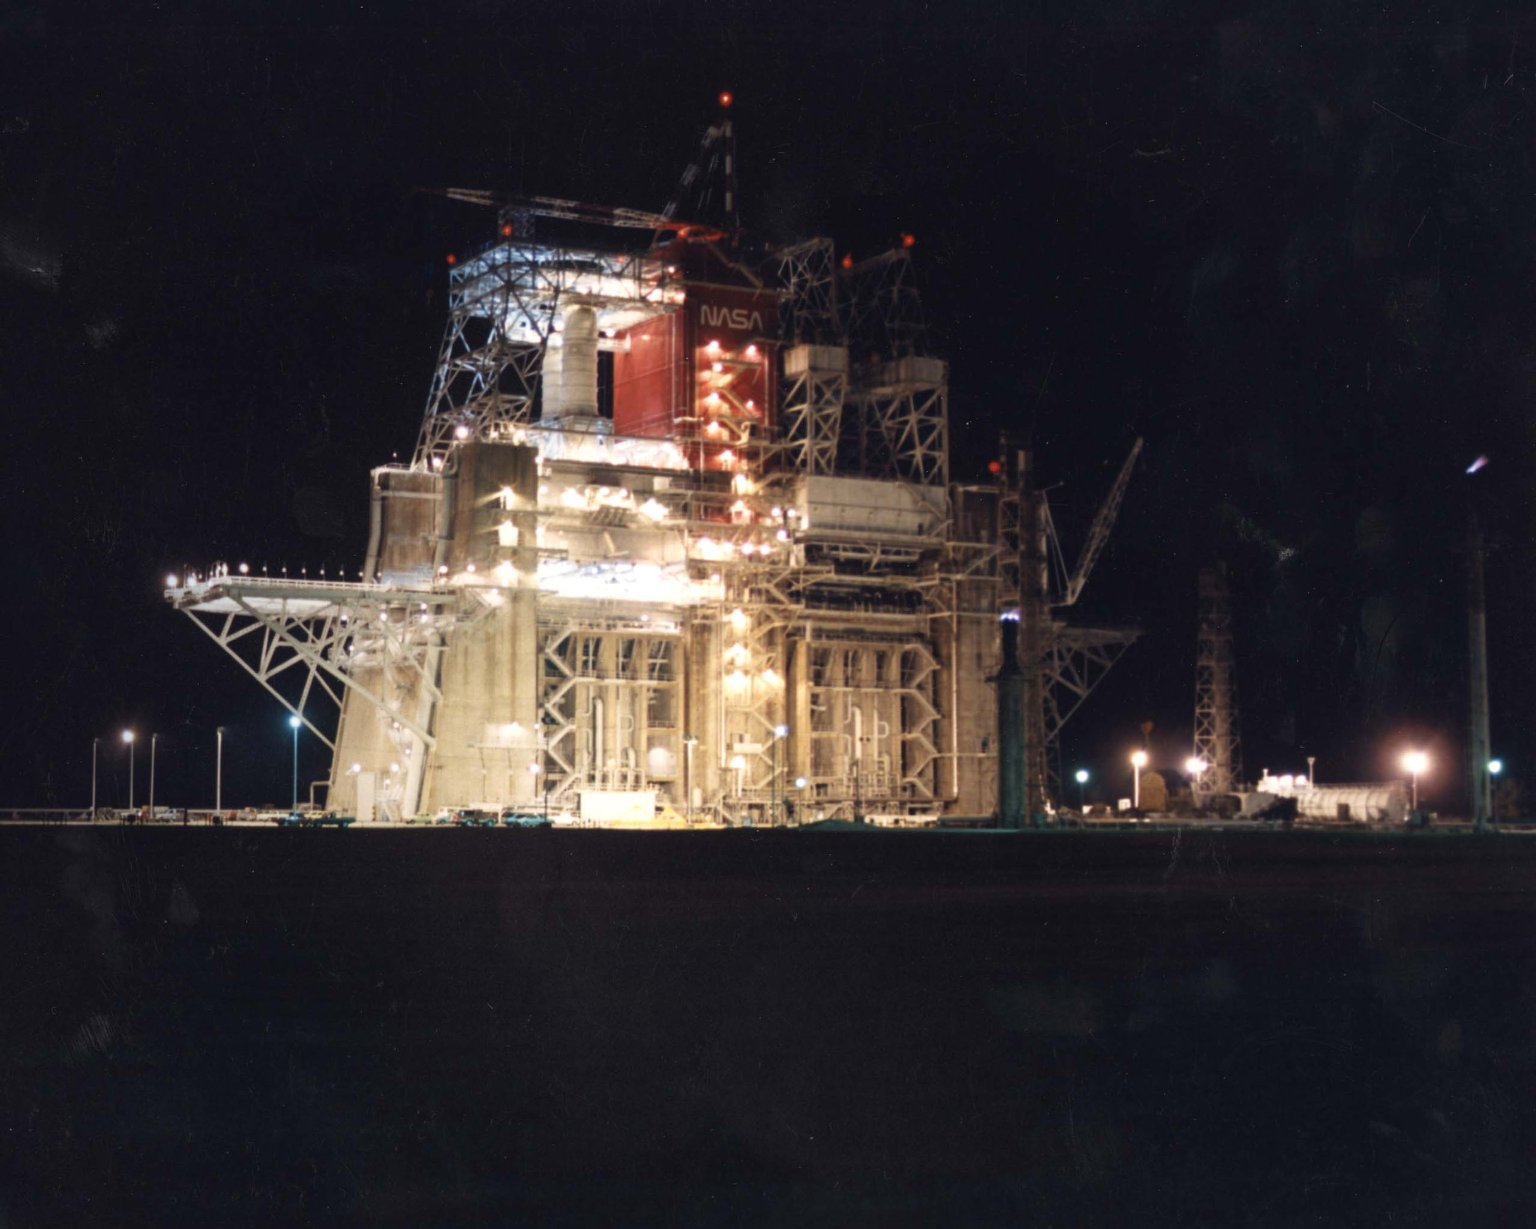 B-1 Test Stand at Night